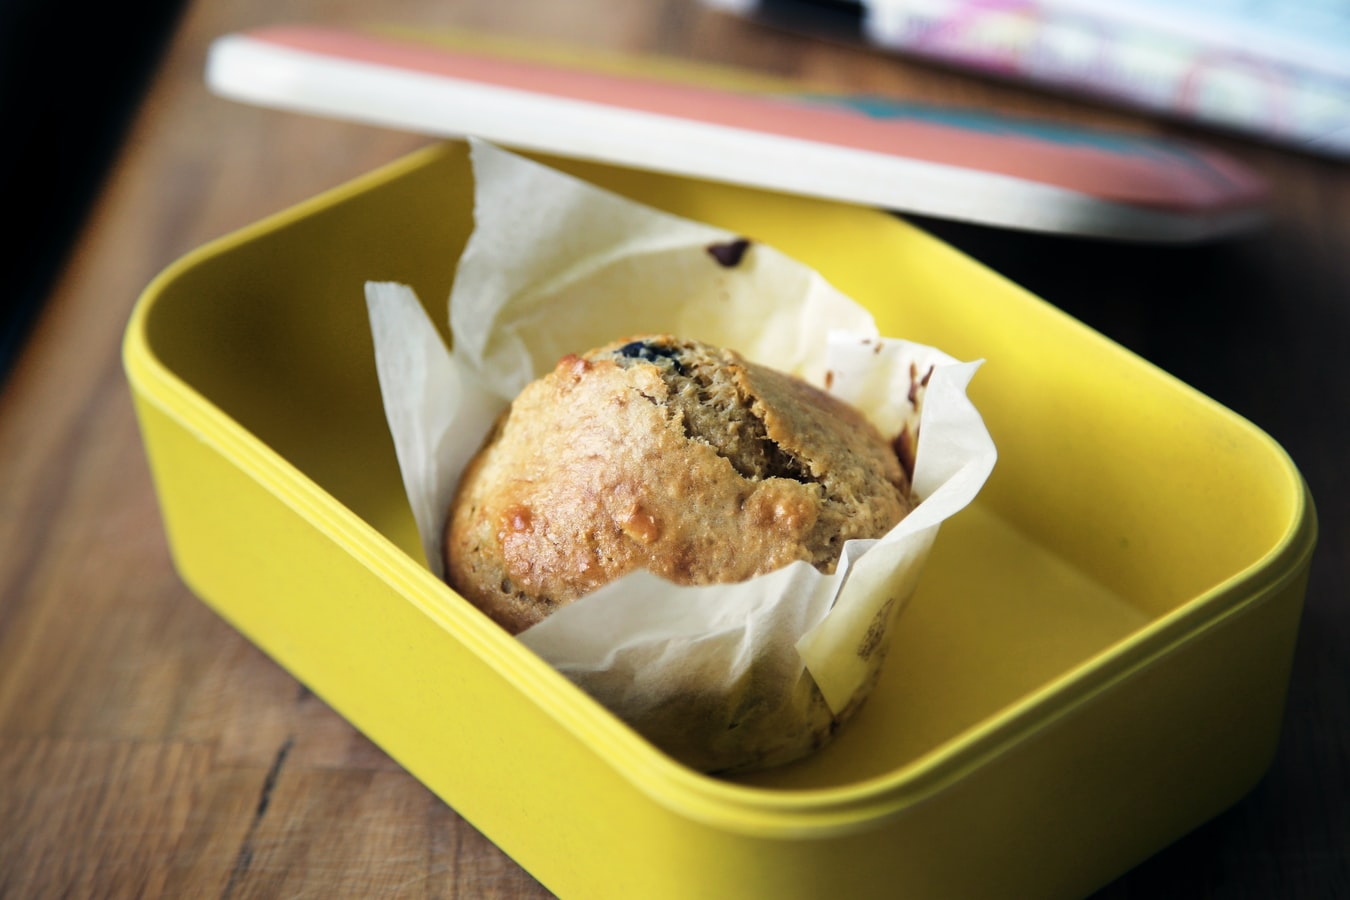 Moderne und funktionale Brotbox